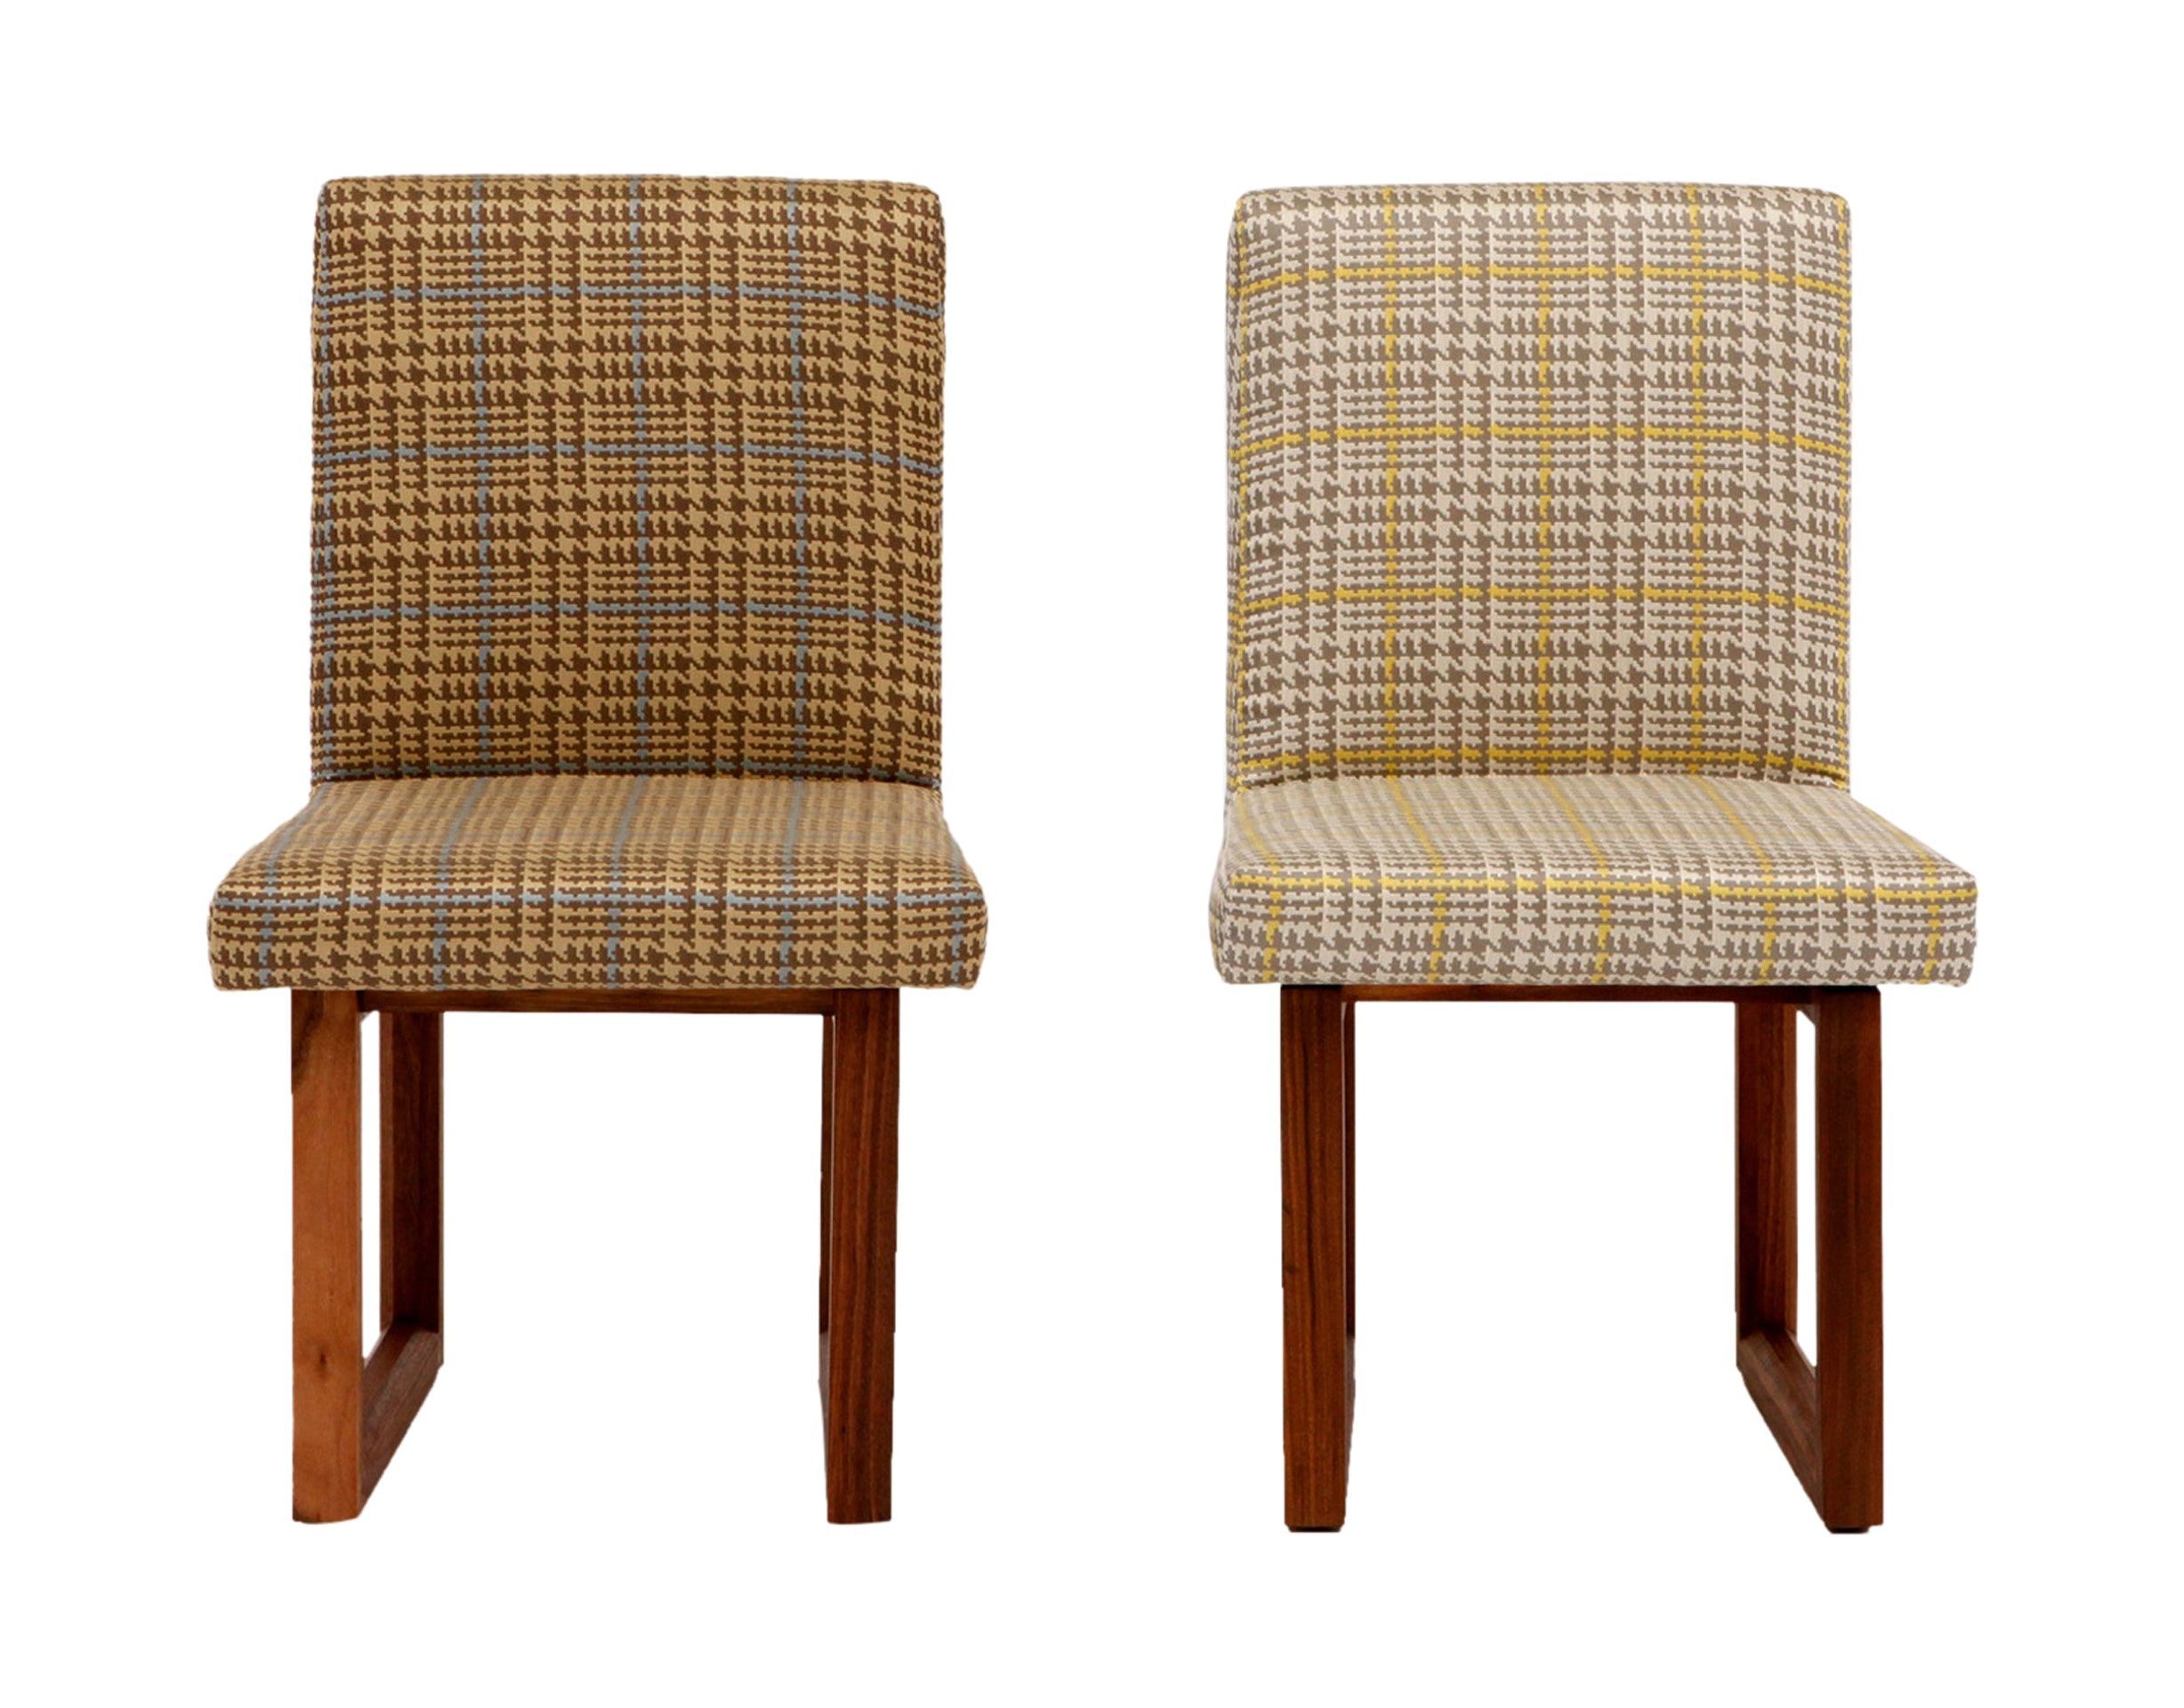 Super C2 W Houndstooth Chair Houndstooth Fabrics Furniture Ibusinesslaw Wood Chair Design Ideas Ibusinesslaworg